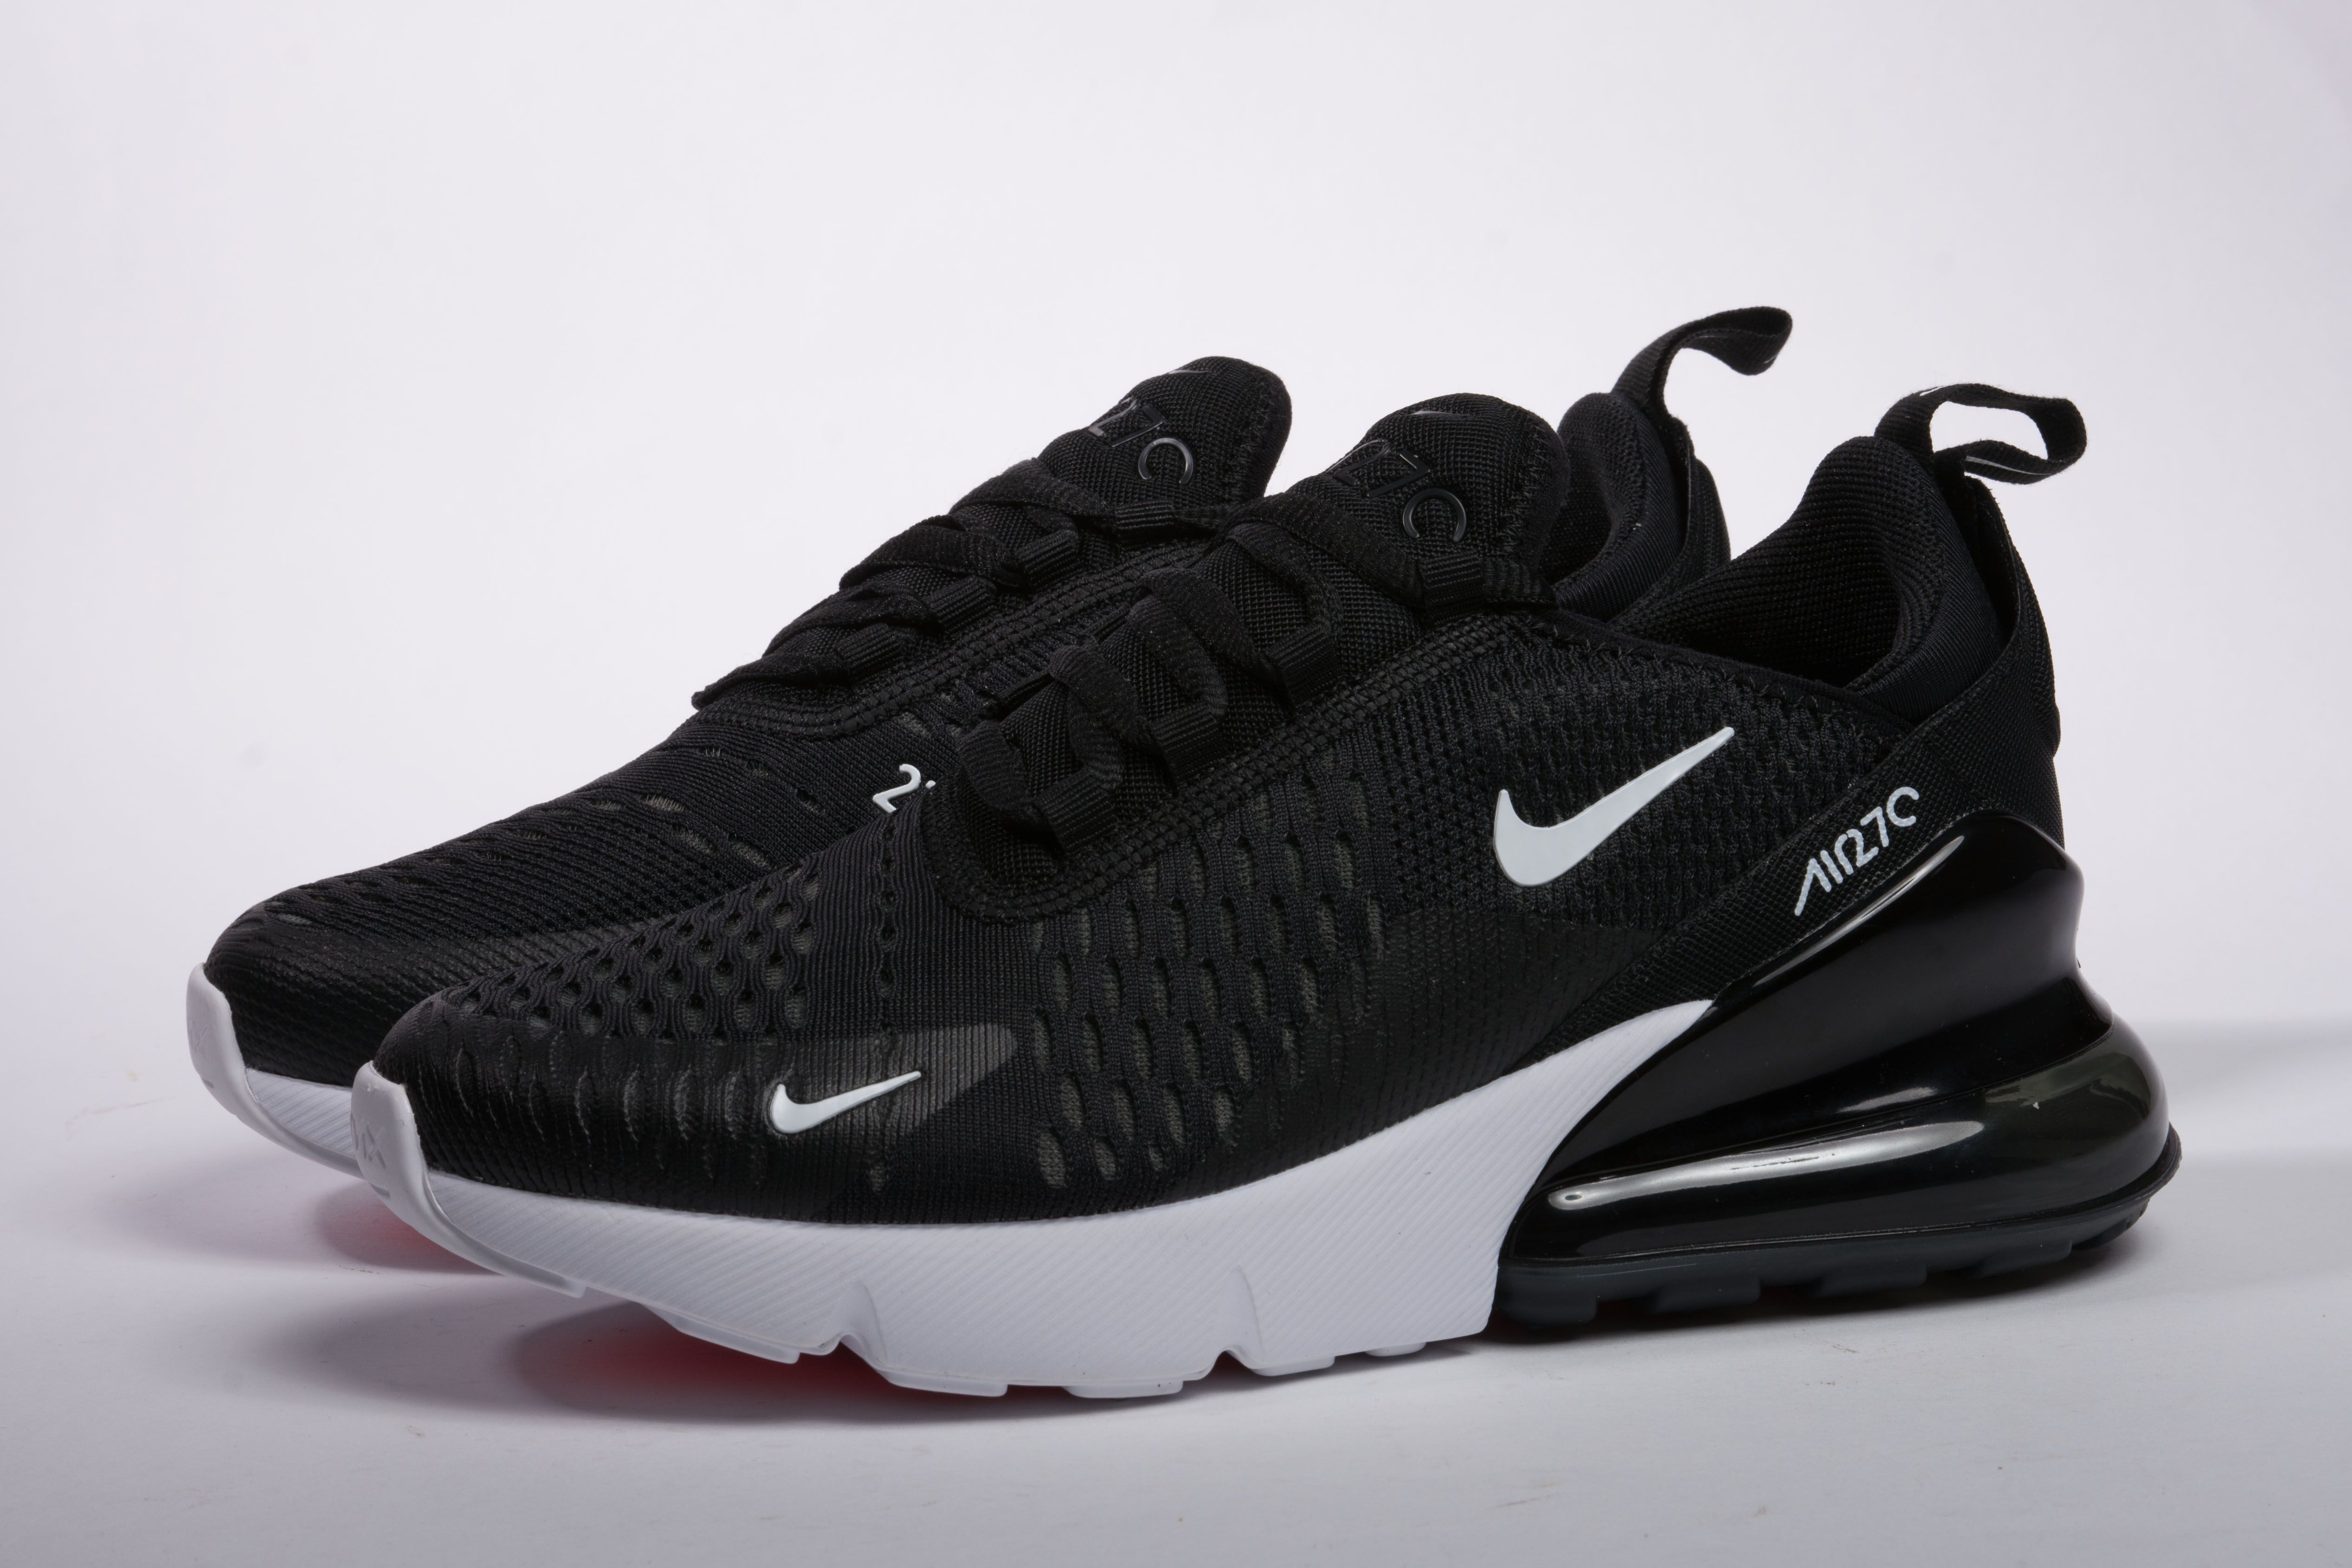 separation shoes ec396 4a320 Nike Air Max 270 AH6789-002 21. Find this Pin and ...